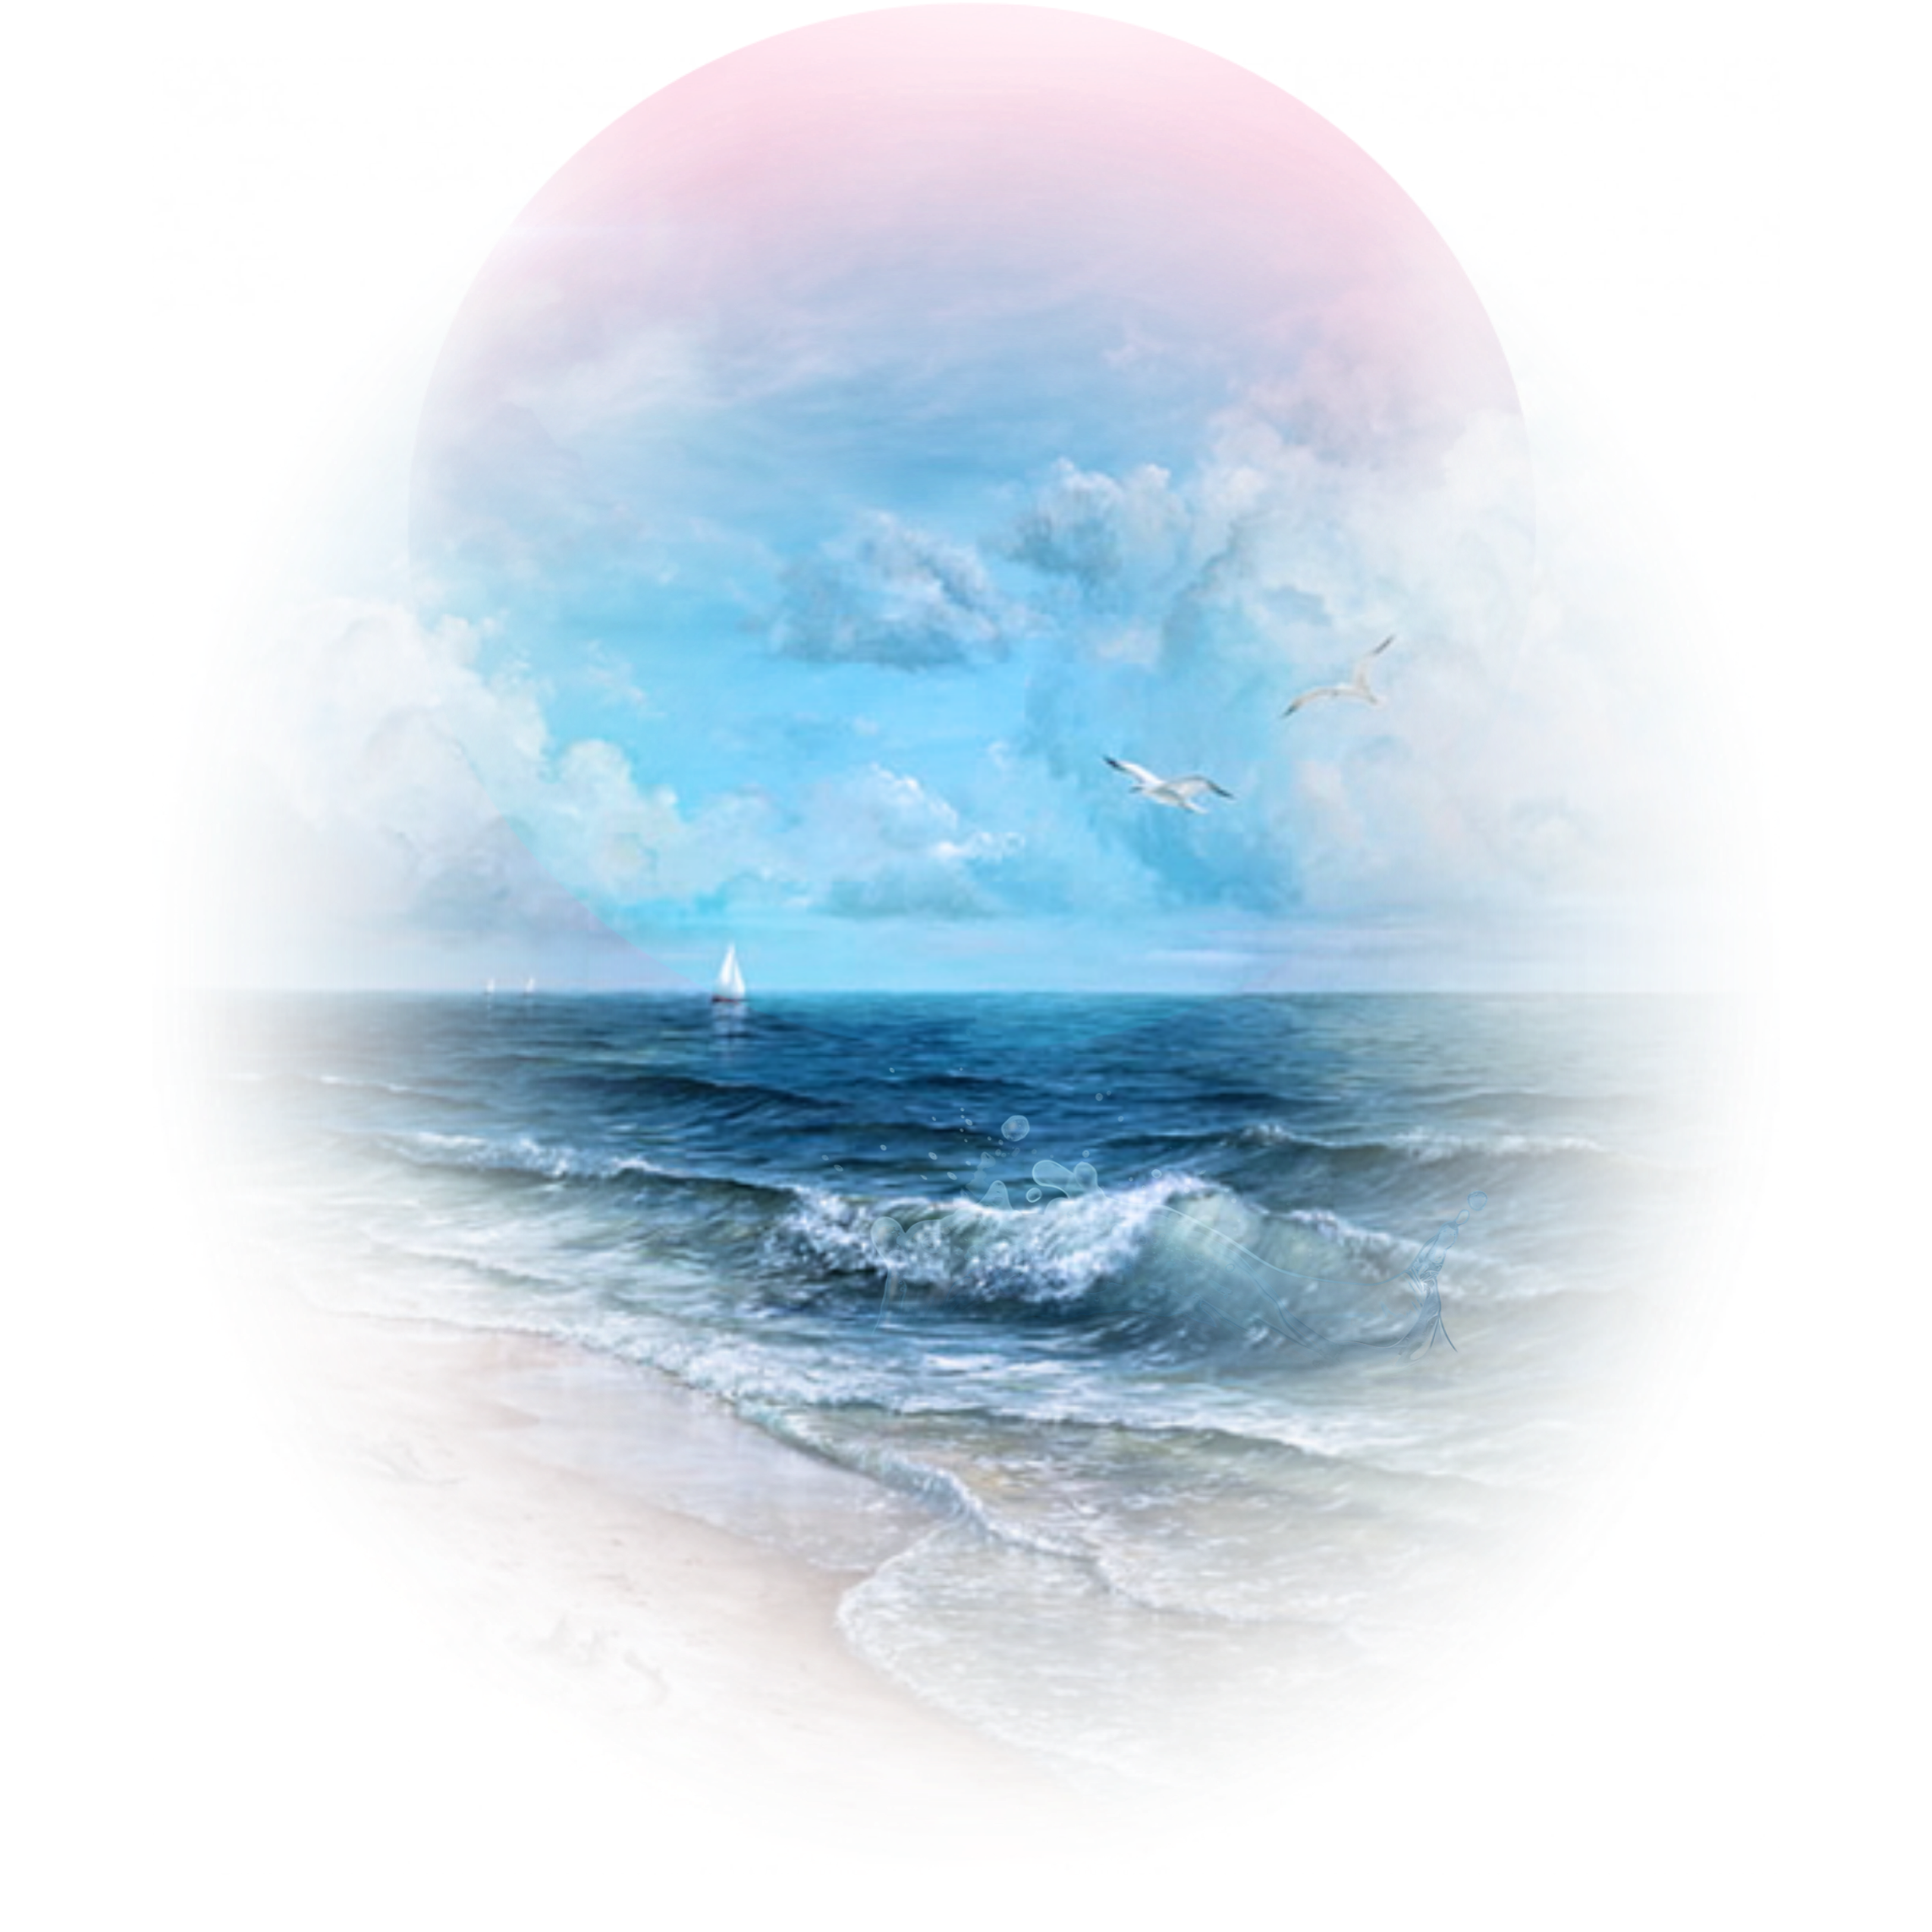 Pin By Adia Luz On Luna Moon With Images Sky Beach Luna Moon